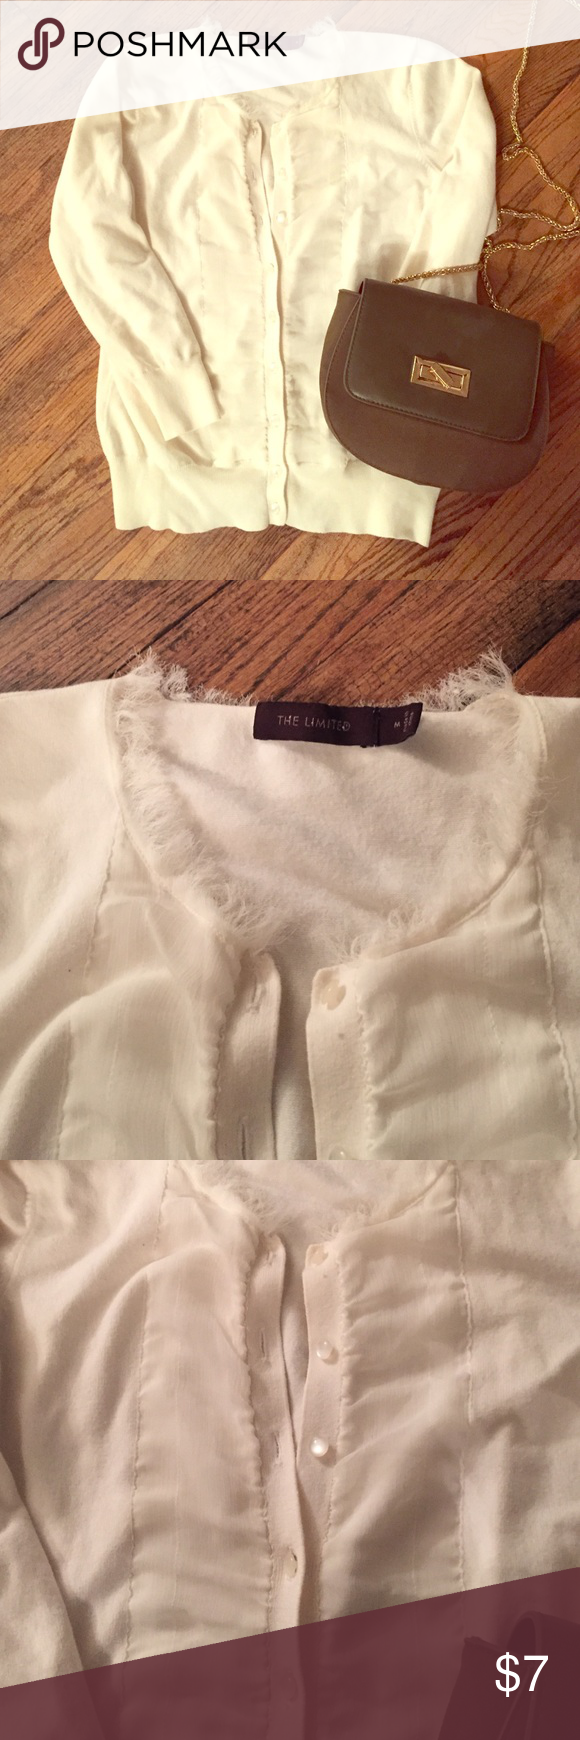 THE LIMITED cream cardigan Fringe detail around neck, detail stripe down buttons The Limited Sweaters Cardigans